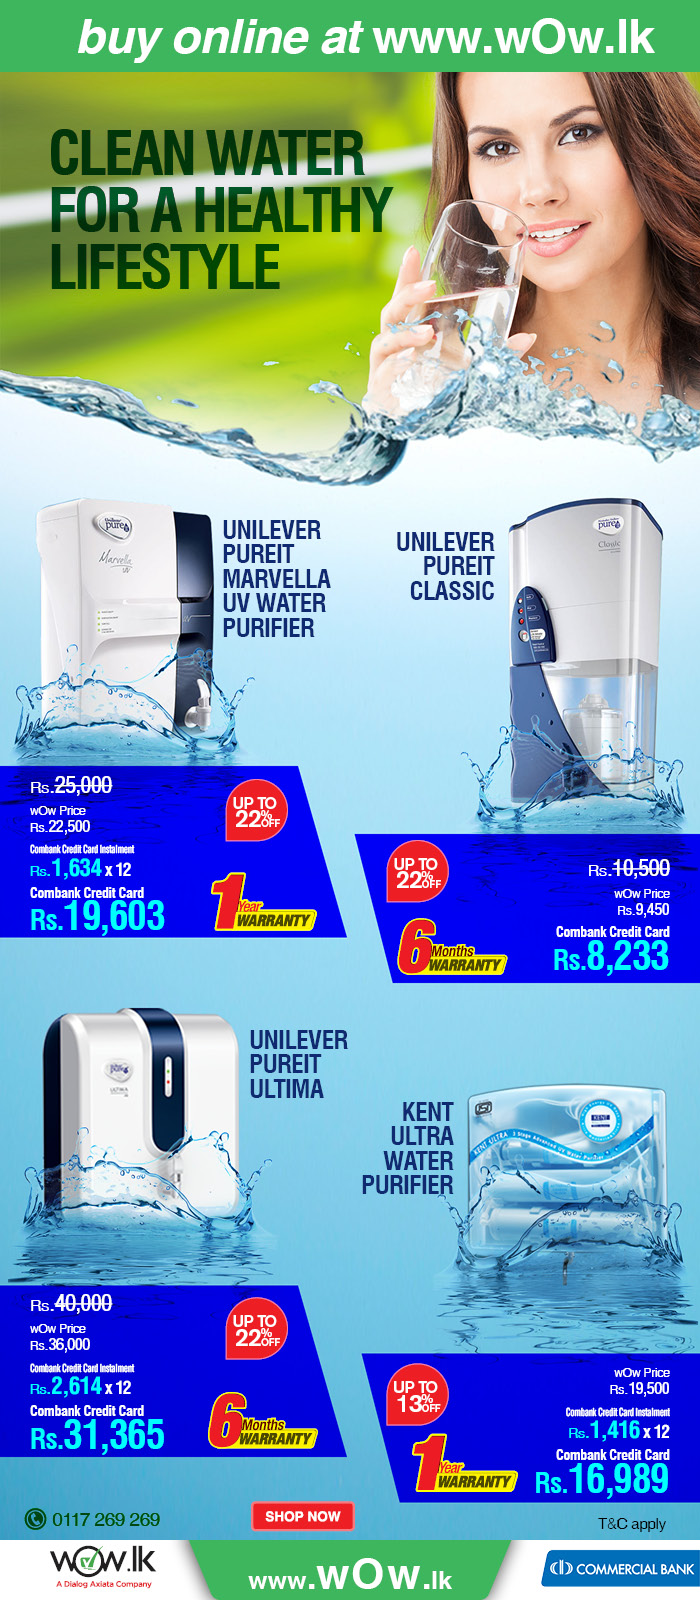 http://www.wow.lk/mall/buyonline/water-purifiers-filters/?Ns=sku.inventoryAvailability%7C0&utm_source=dailymail&utm_medium=newsletter&utm_campaign=waterpurifiers